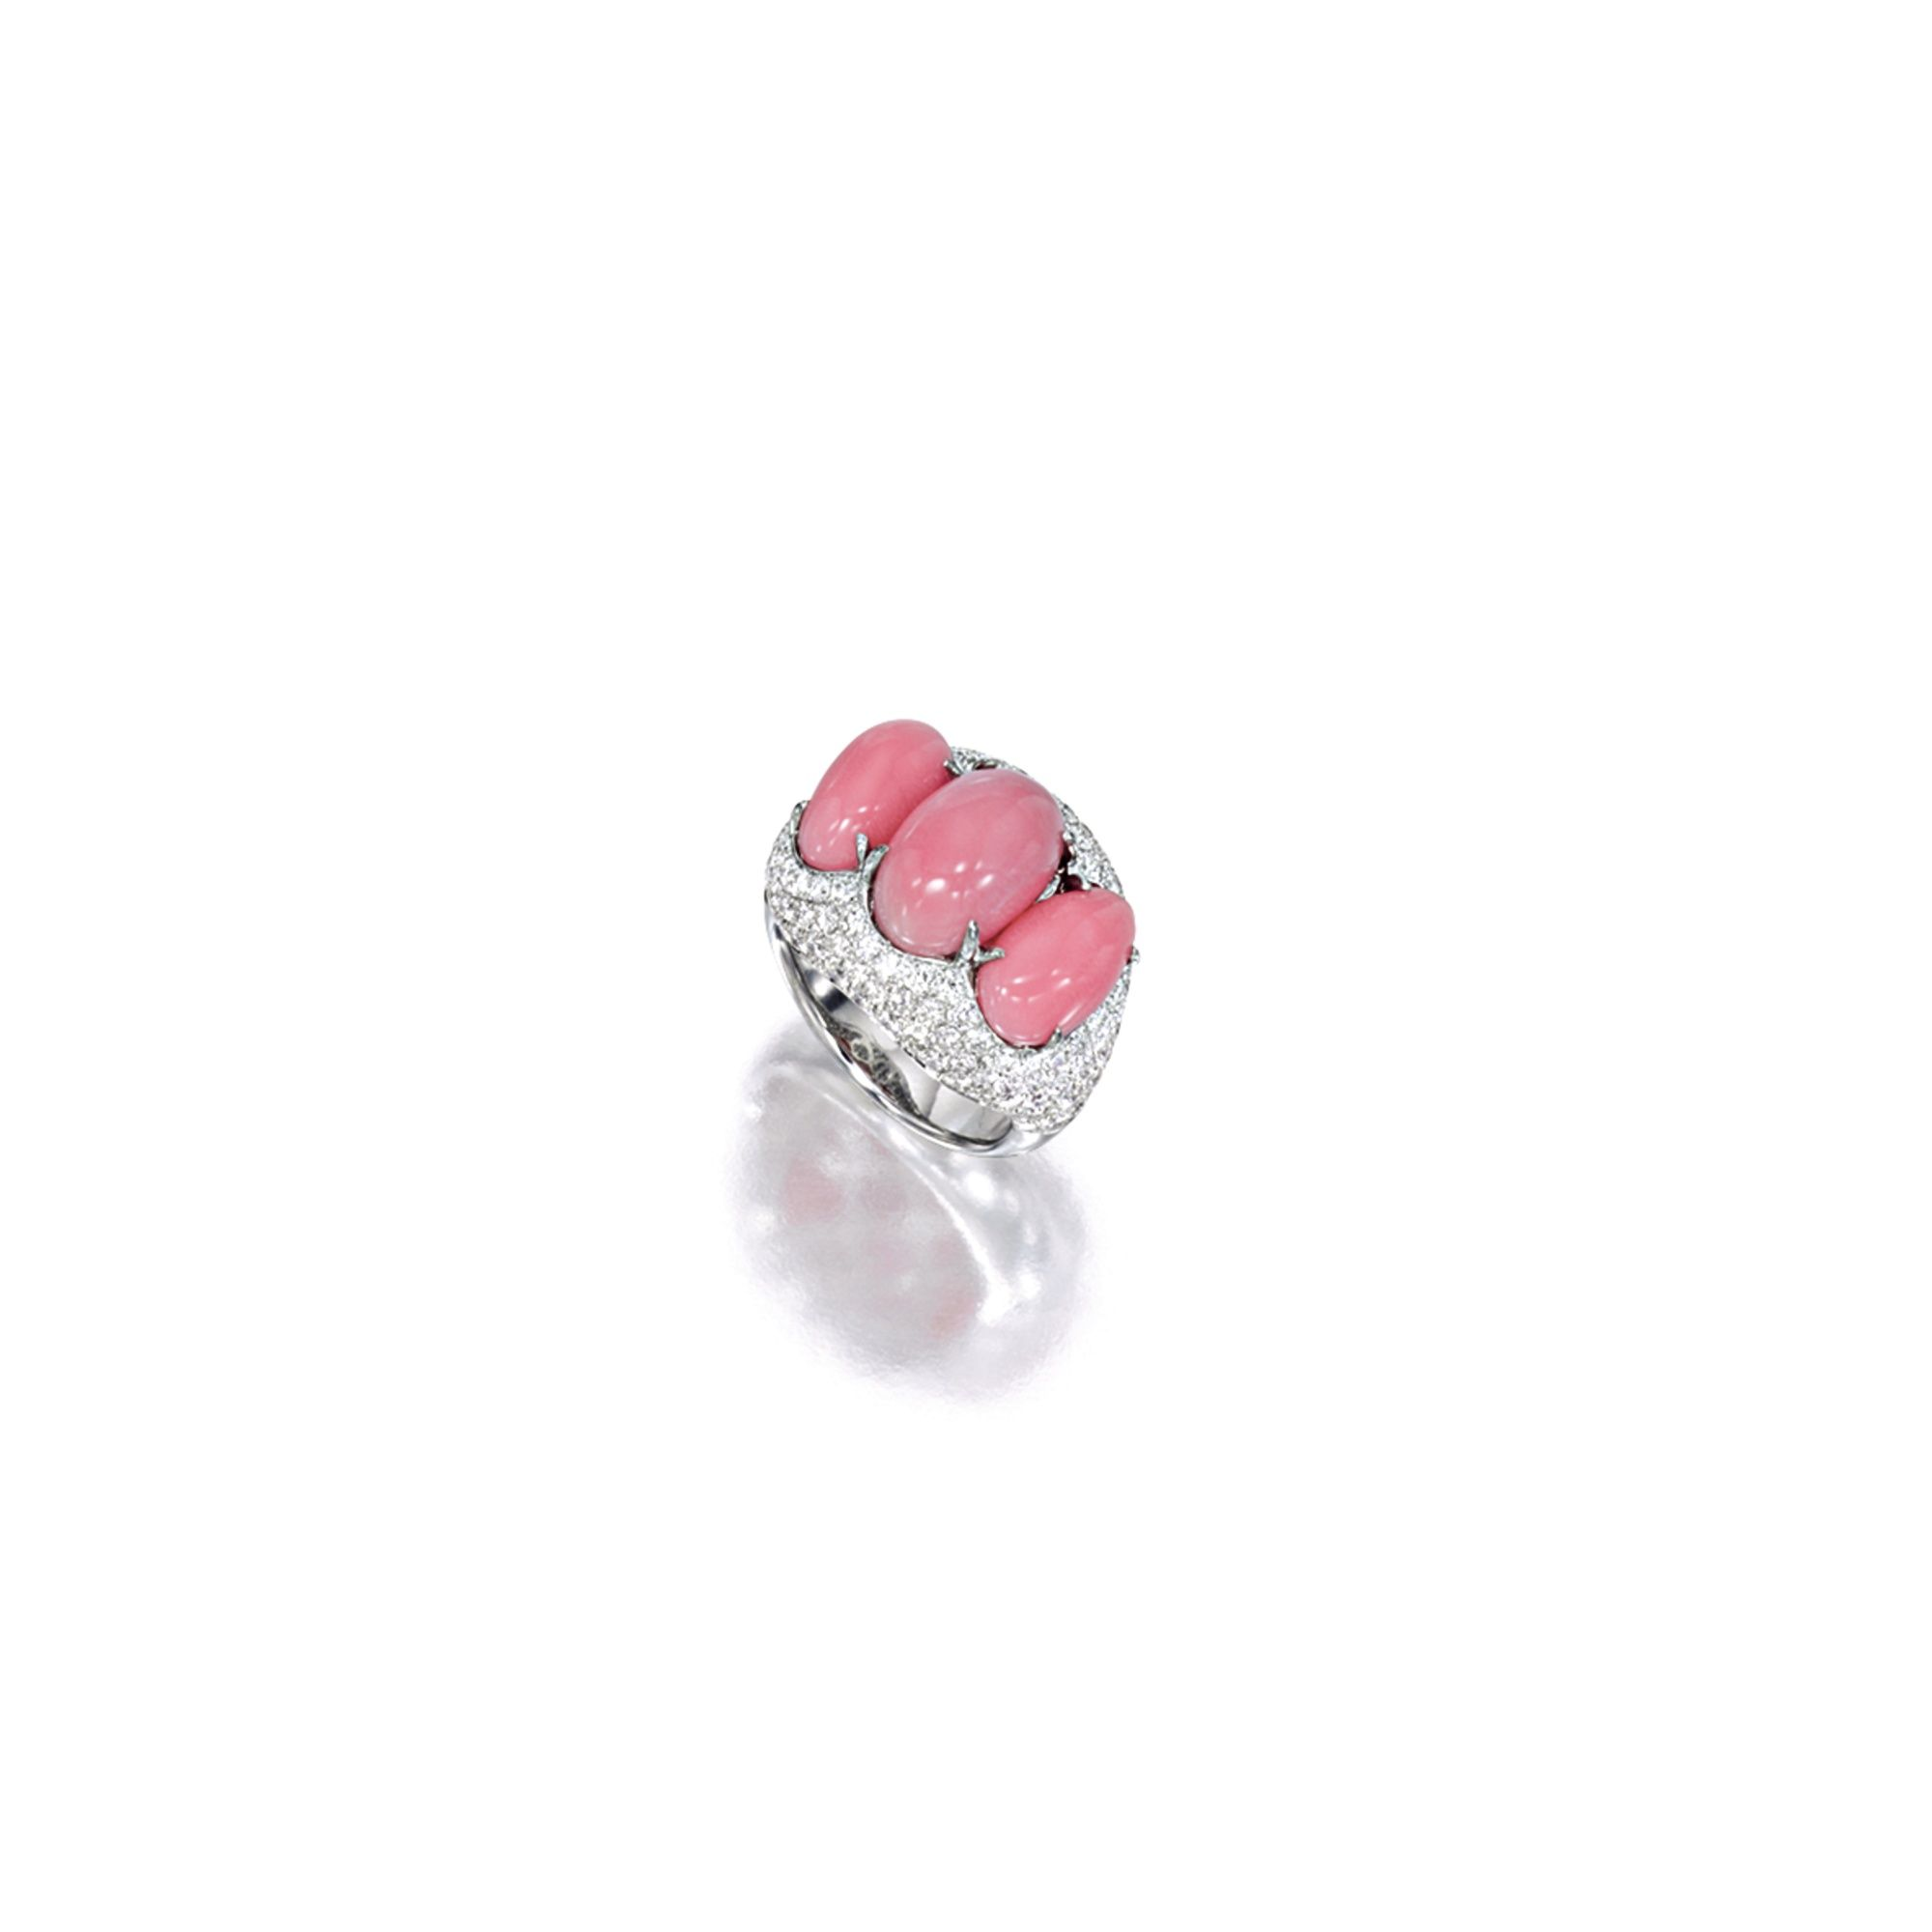 Conch Pearl And Diamond Ring Centring On Three Conch Pearls Measuring  Approximately 1208 X 766mm